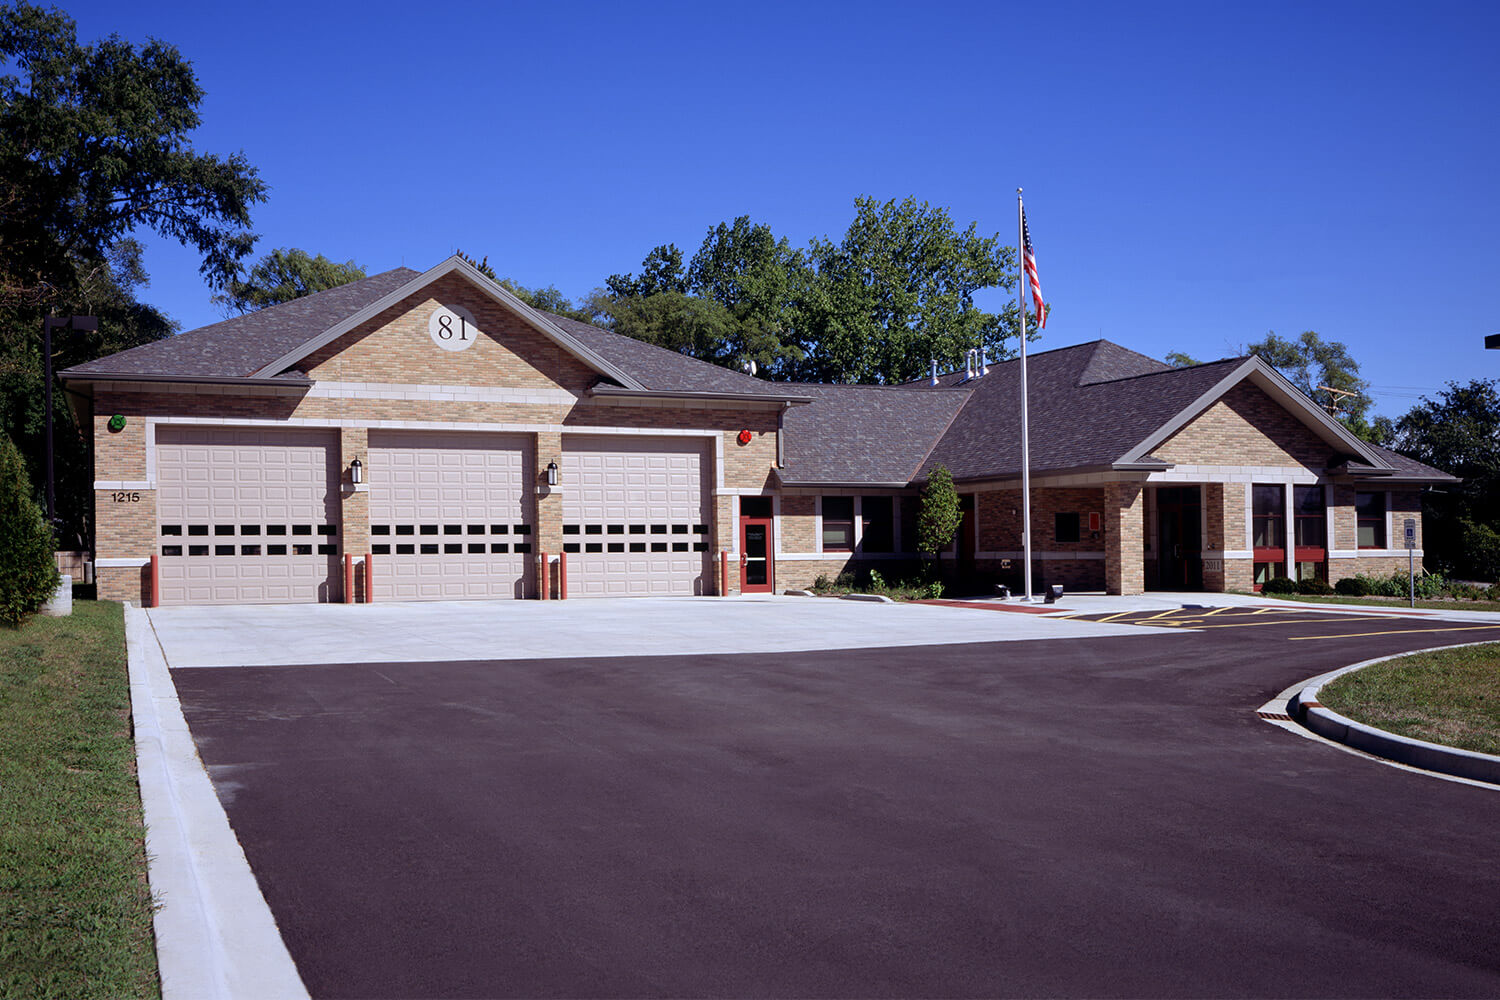 Village of Palatine Fire Station 81 exterior